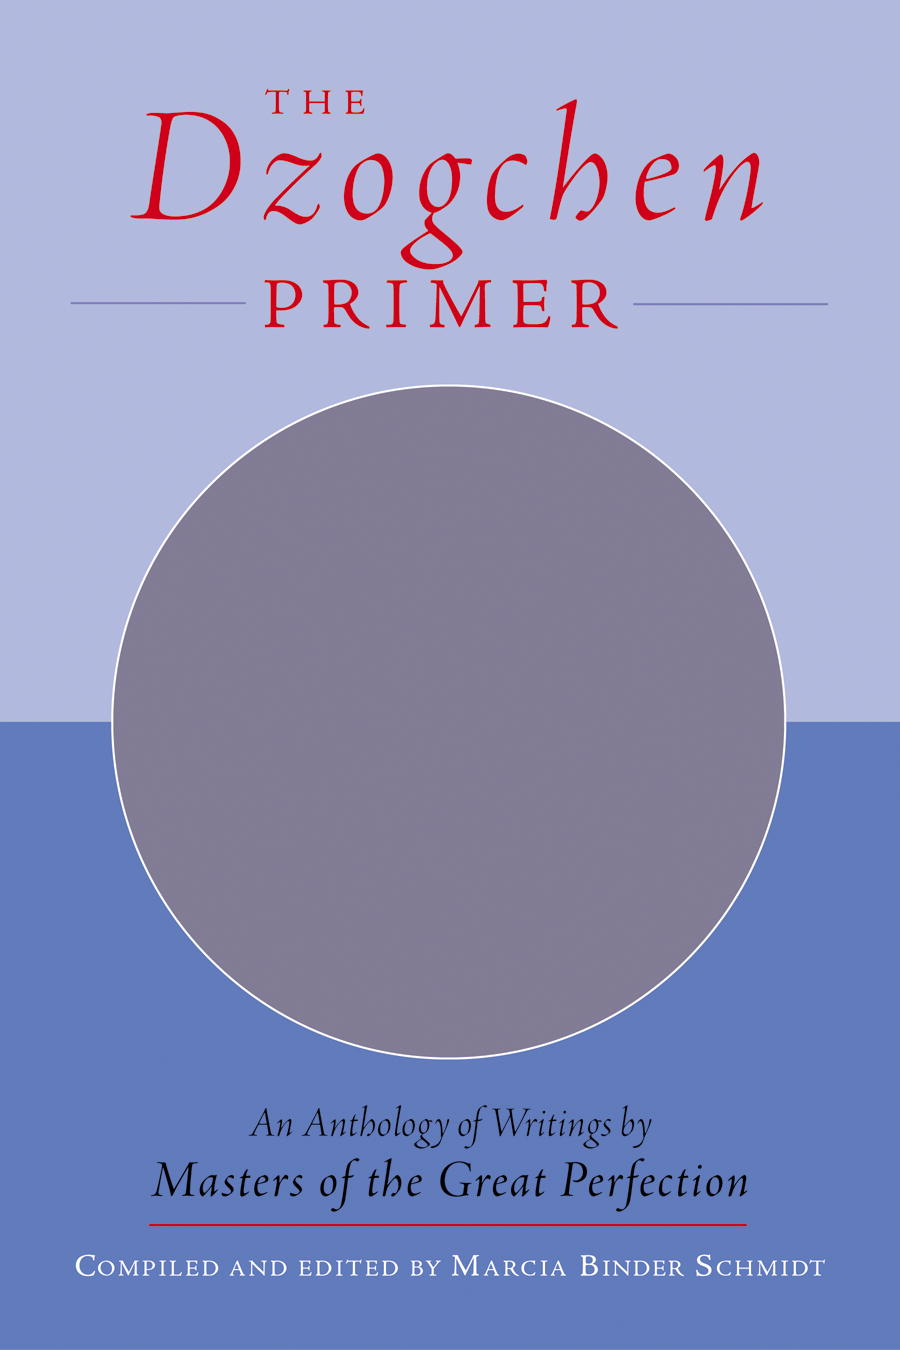 Marcia Binder Schmidt The Dzogchen Primer Embracing The Spiritual Path According To The Gre